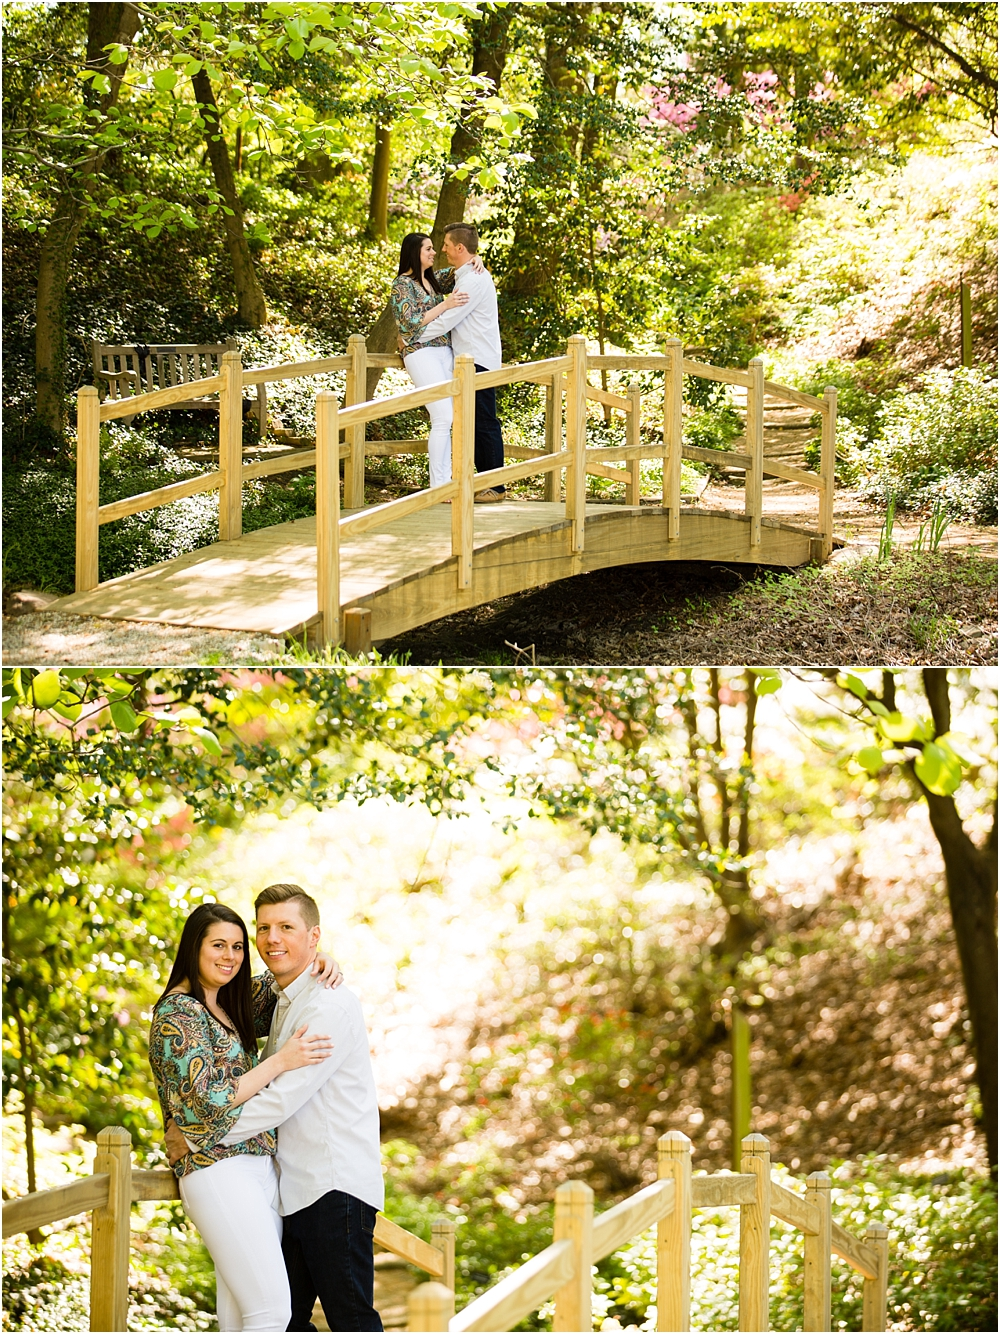 Historic London Town Gardens Engagement Session Mandy Justin Living Radiant Photography_0013.jpg